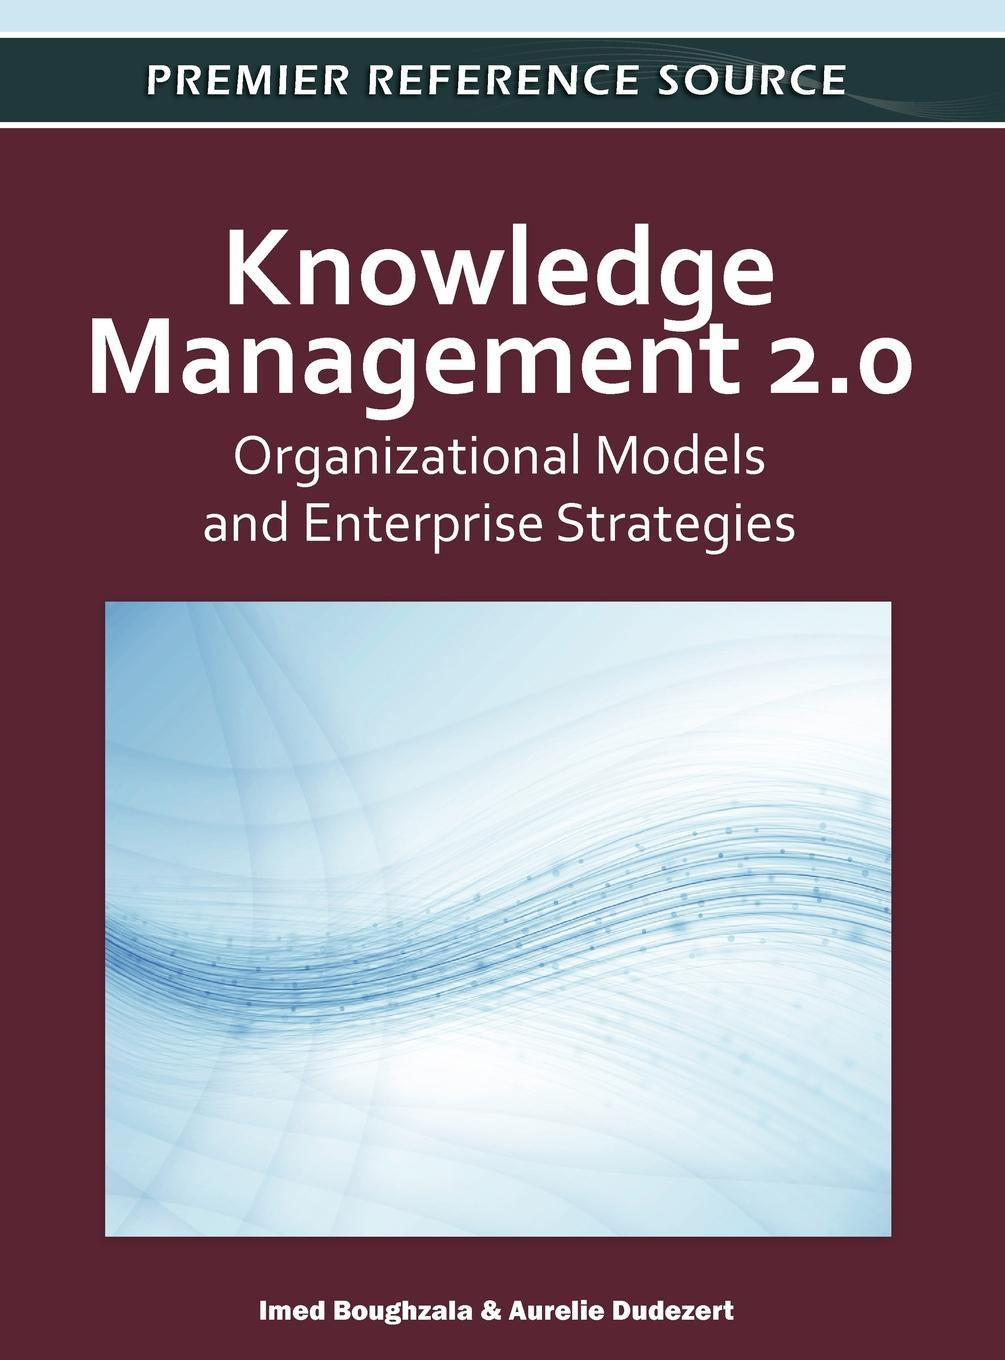 Knowledge Management 2.0: Organizational Models and Enterprise Strategies EB9781613501962